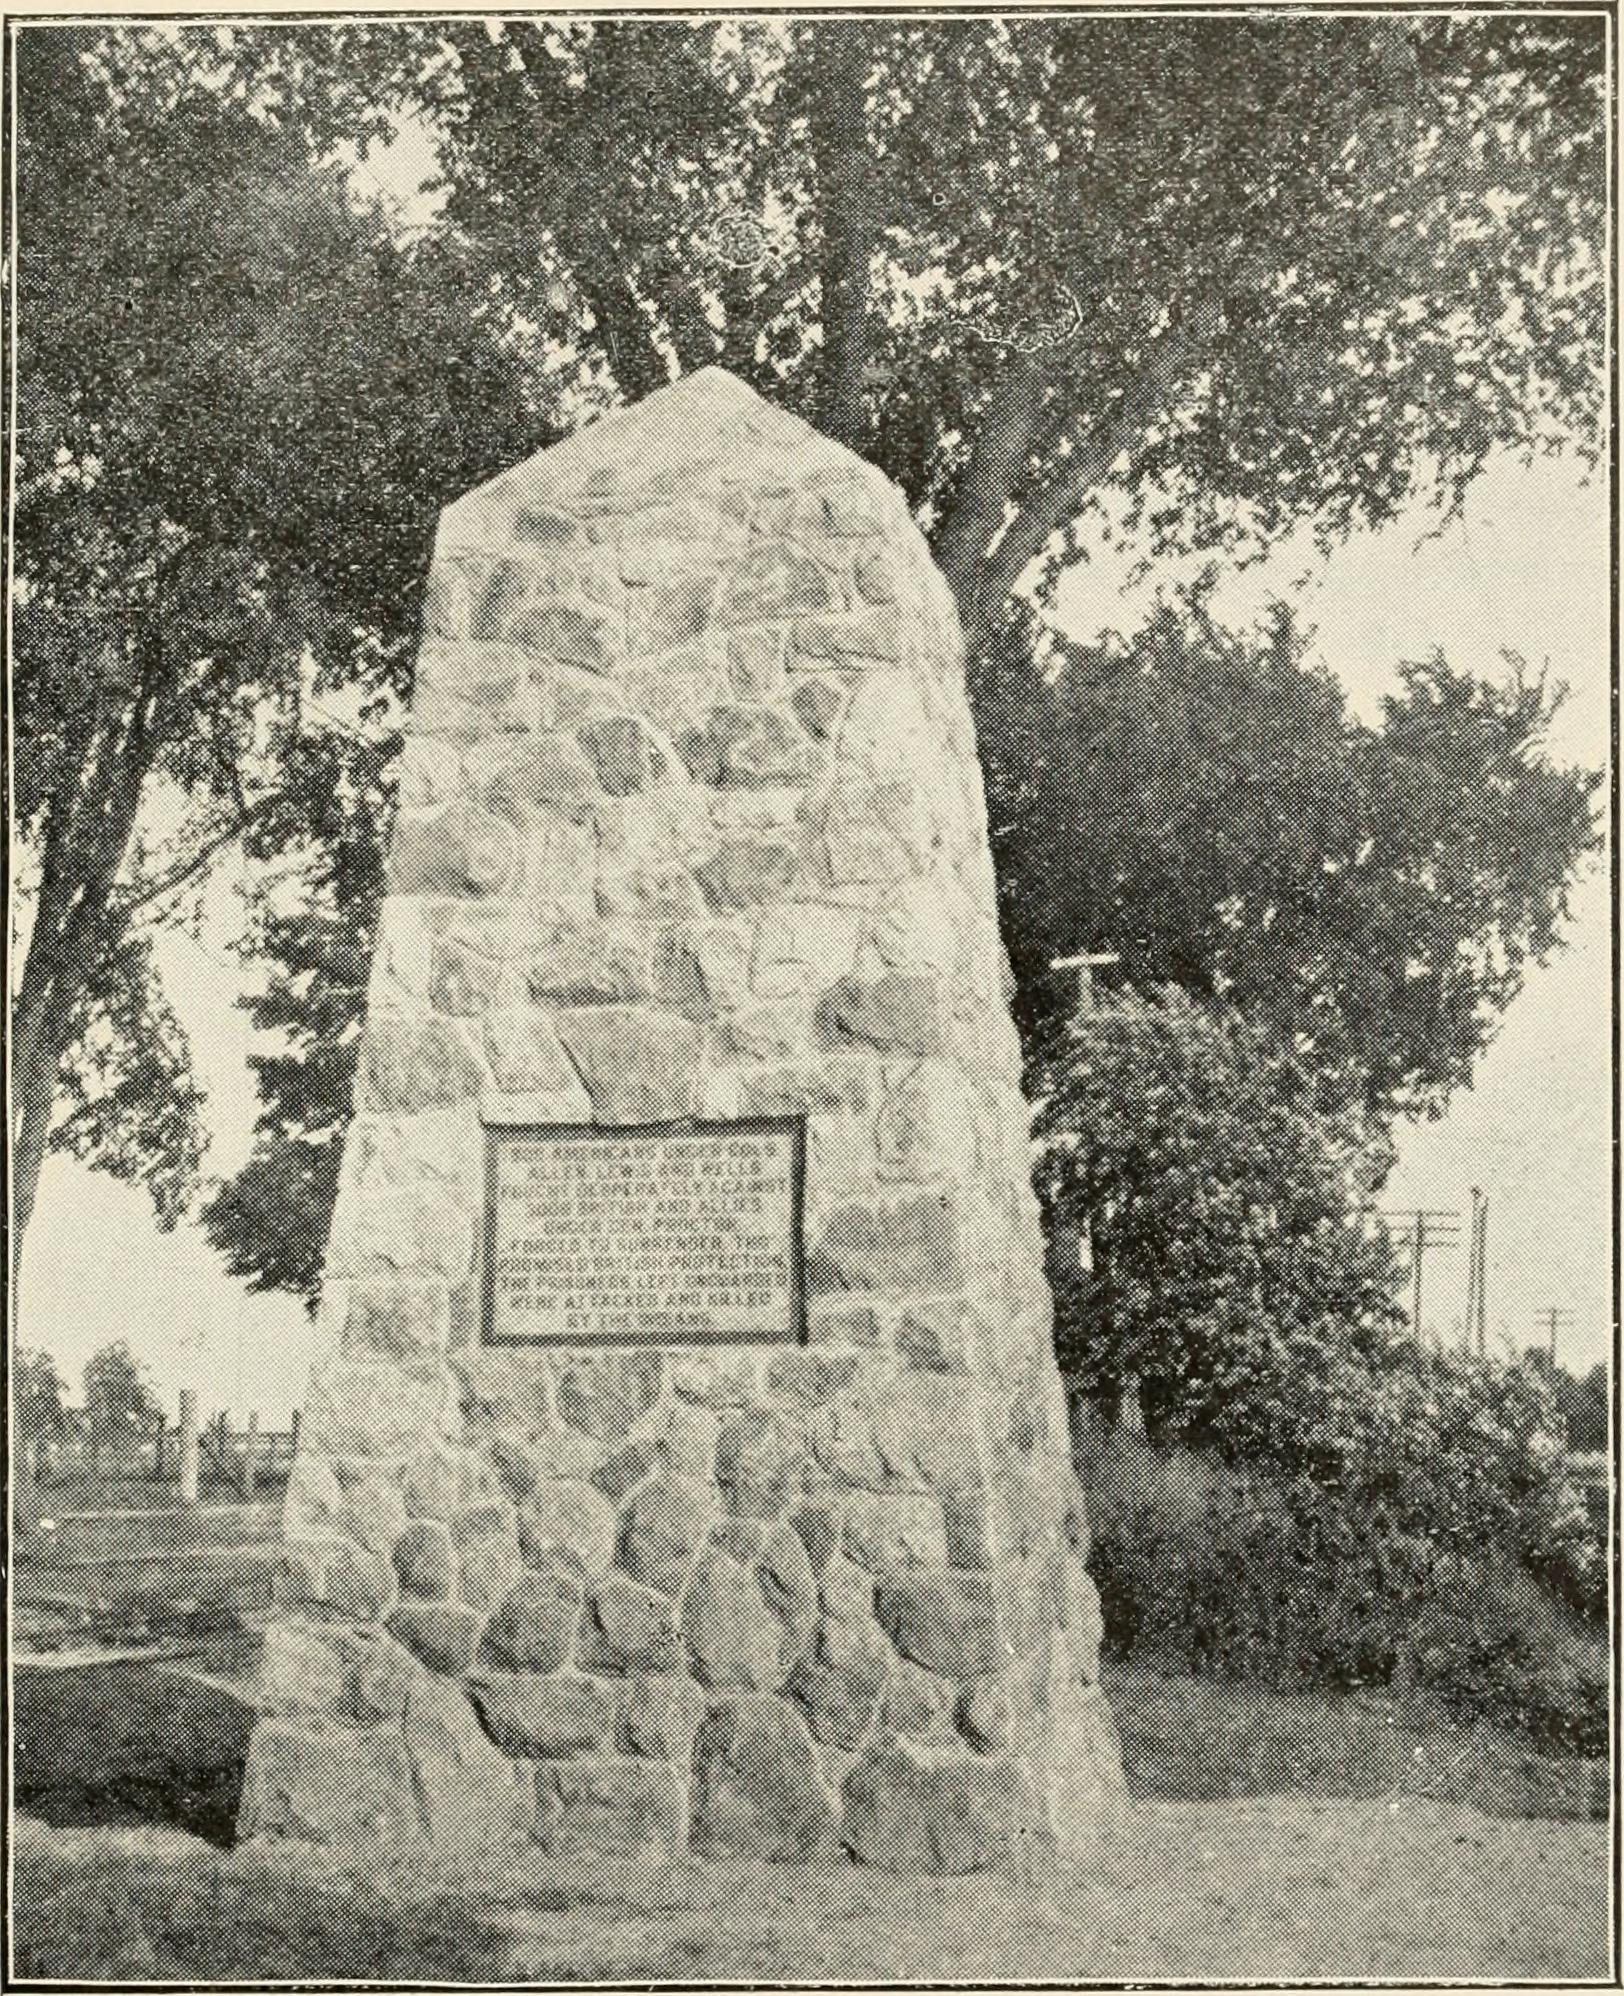 power house Text Appearing After Image: MONUMENT ERECTED BY WOMANS CIVIC IMPROVEMENT SOCIETY, MONROE, ONSITE OF RIVER RAISIN MASSACRE. RIVER RAISIN MASSACRE